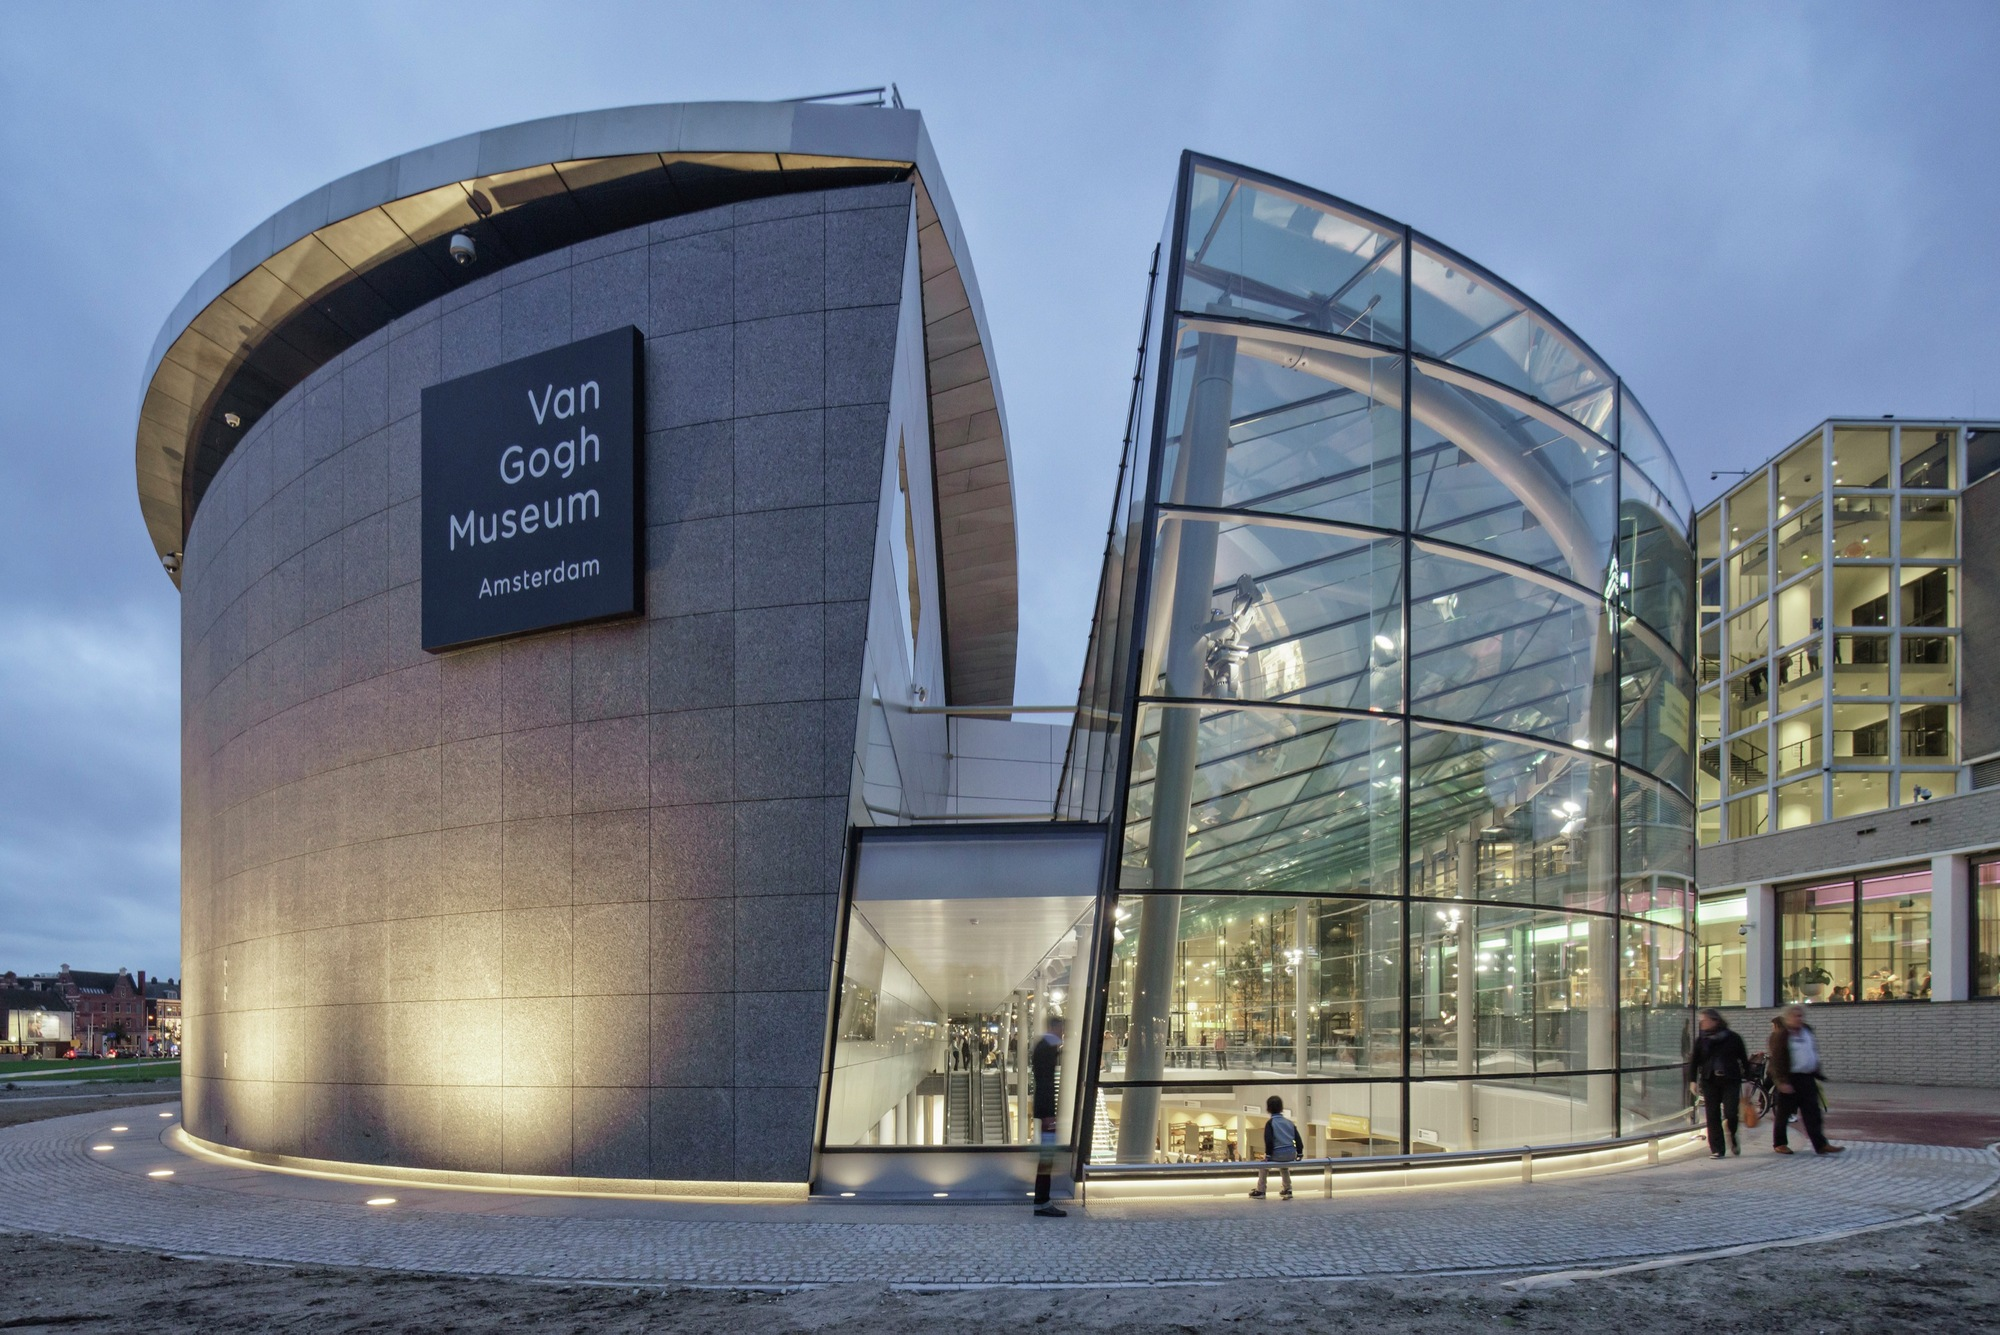 Van Gogh Museum' Entrance Hans Heeswijk Architects Archdaily